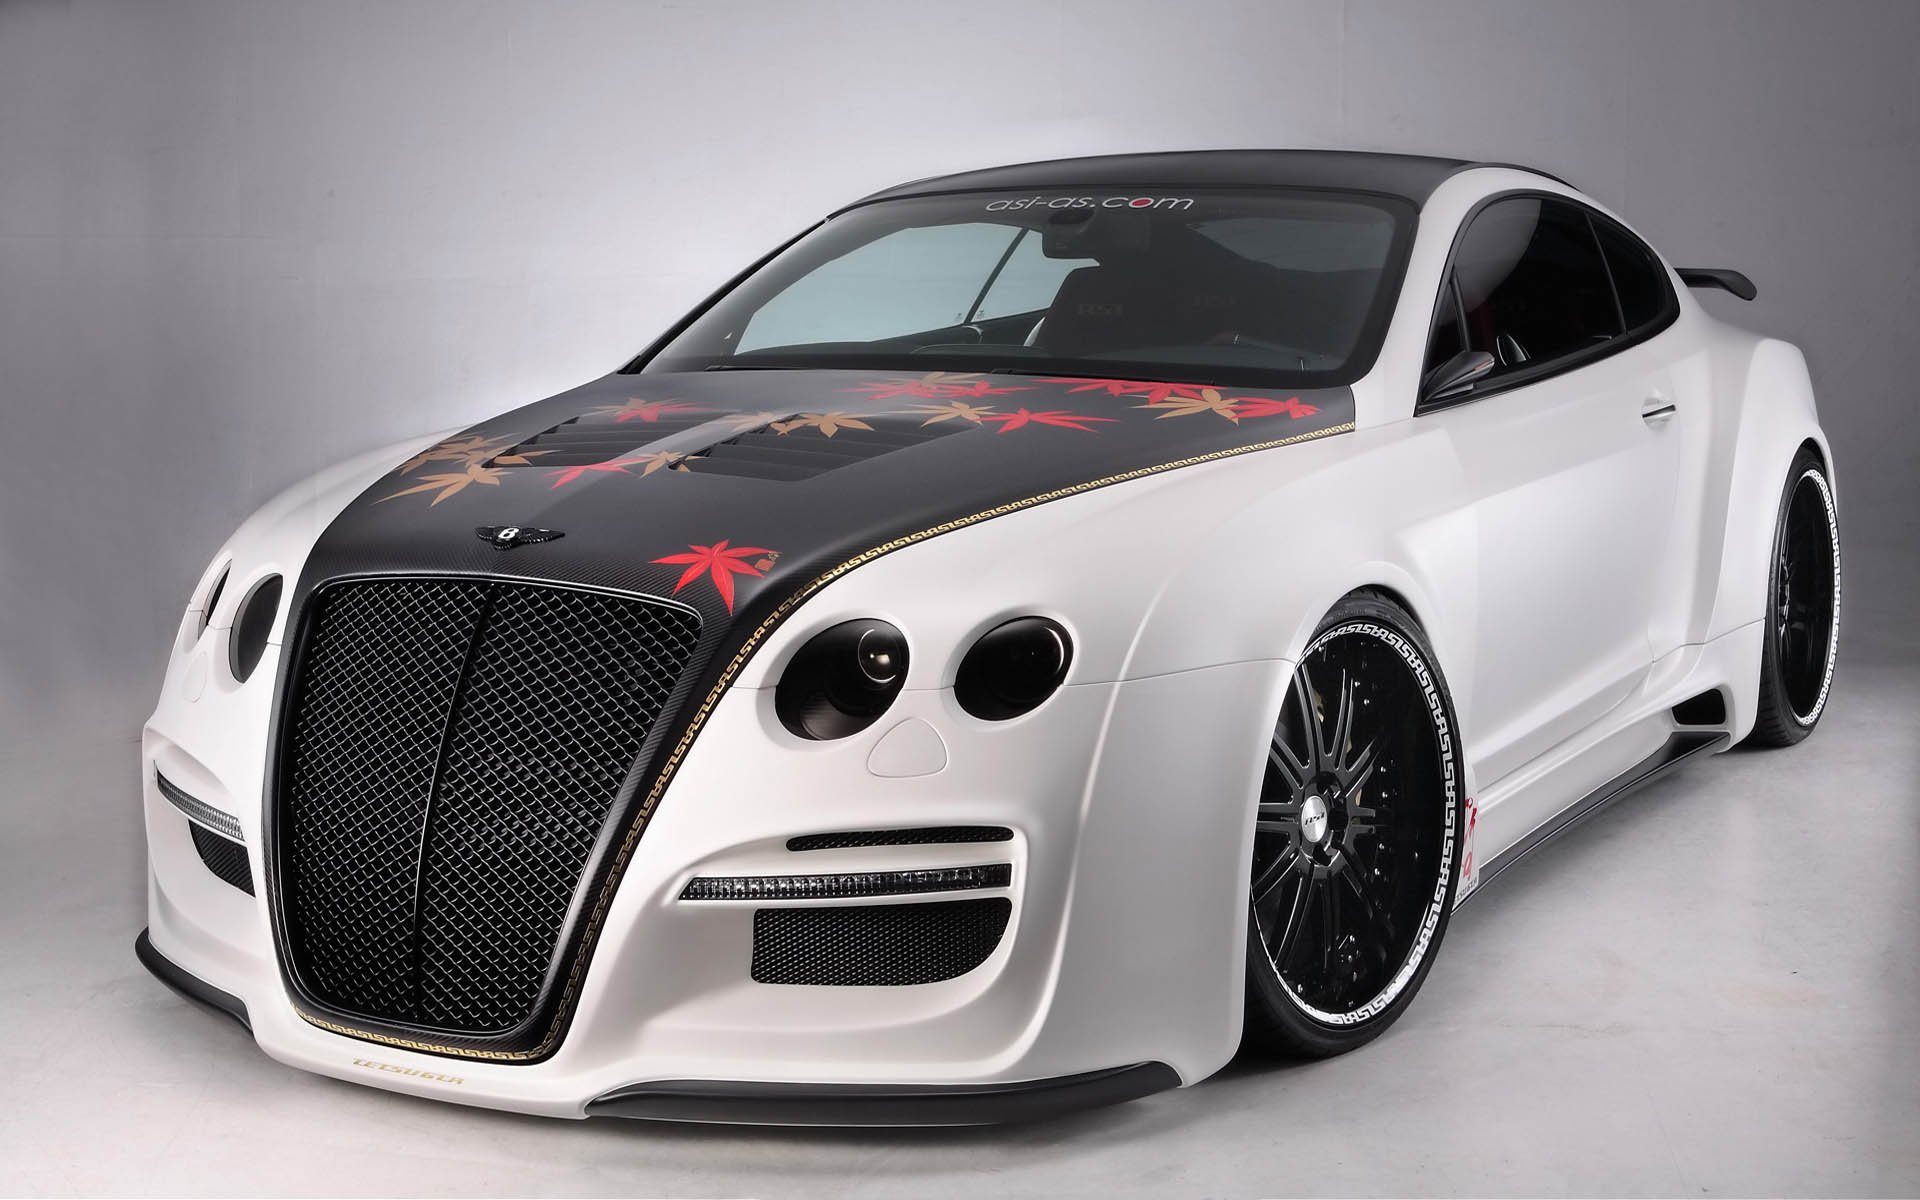 Bentley HD Wallpapers for Windows